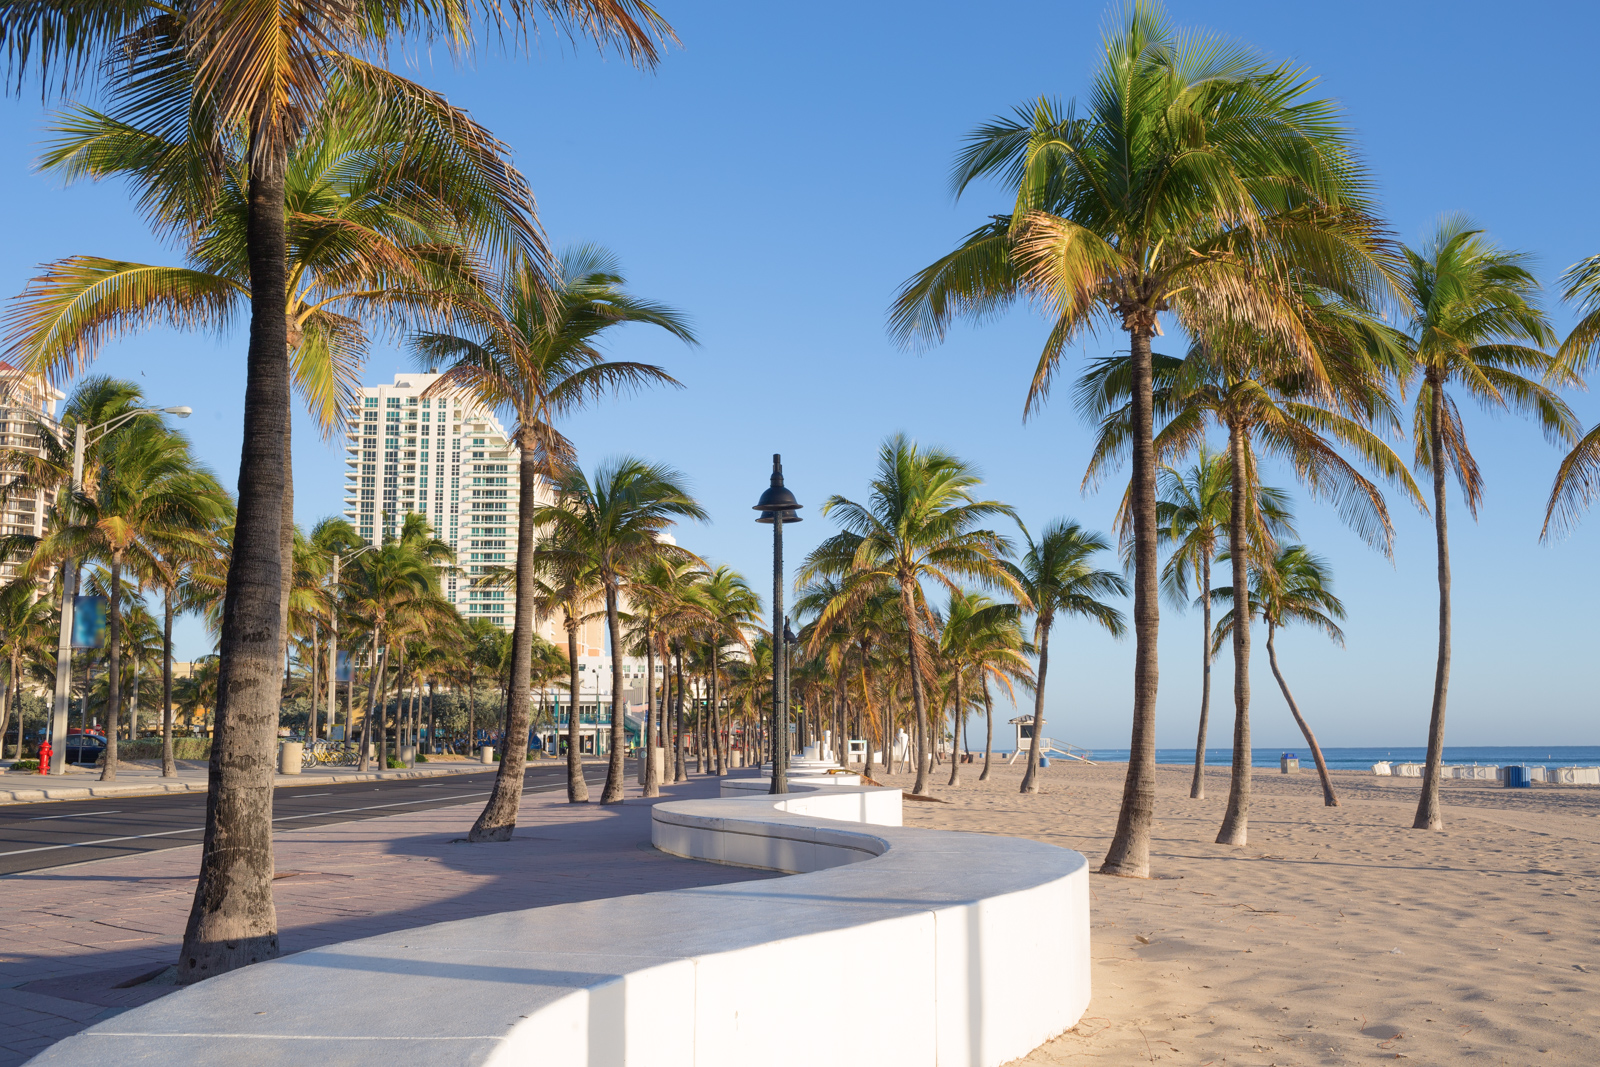 Fort Lauderdale beach, things to do in Fort Lauderdale Florida. Fly from Fort Lauderdale to Bahamas for the best beaches, with Bahamas Air Tours